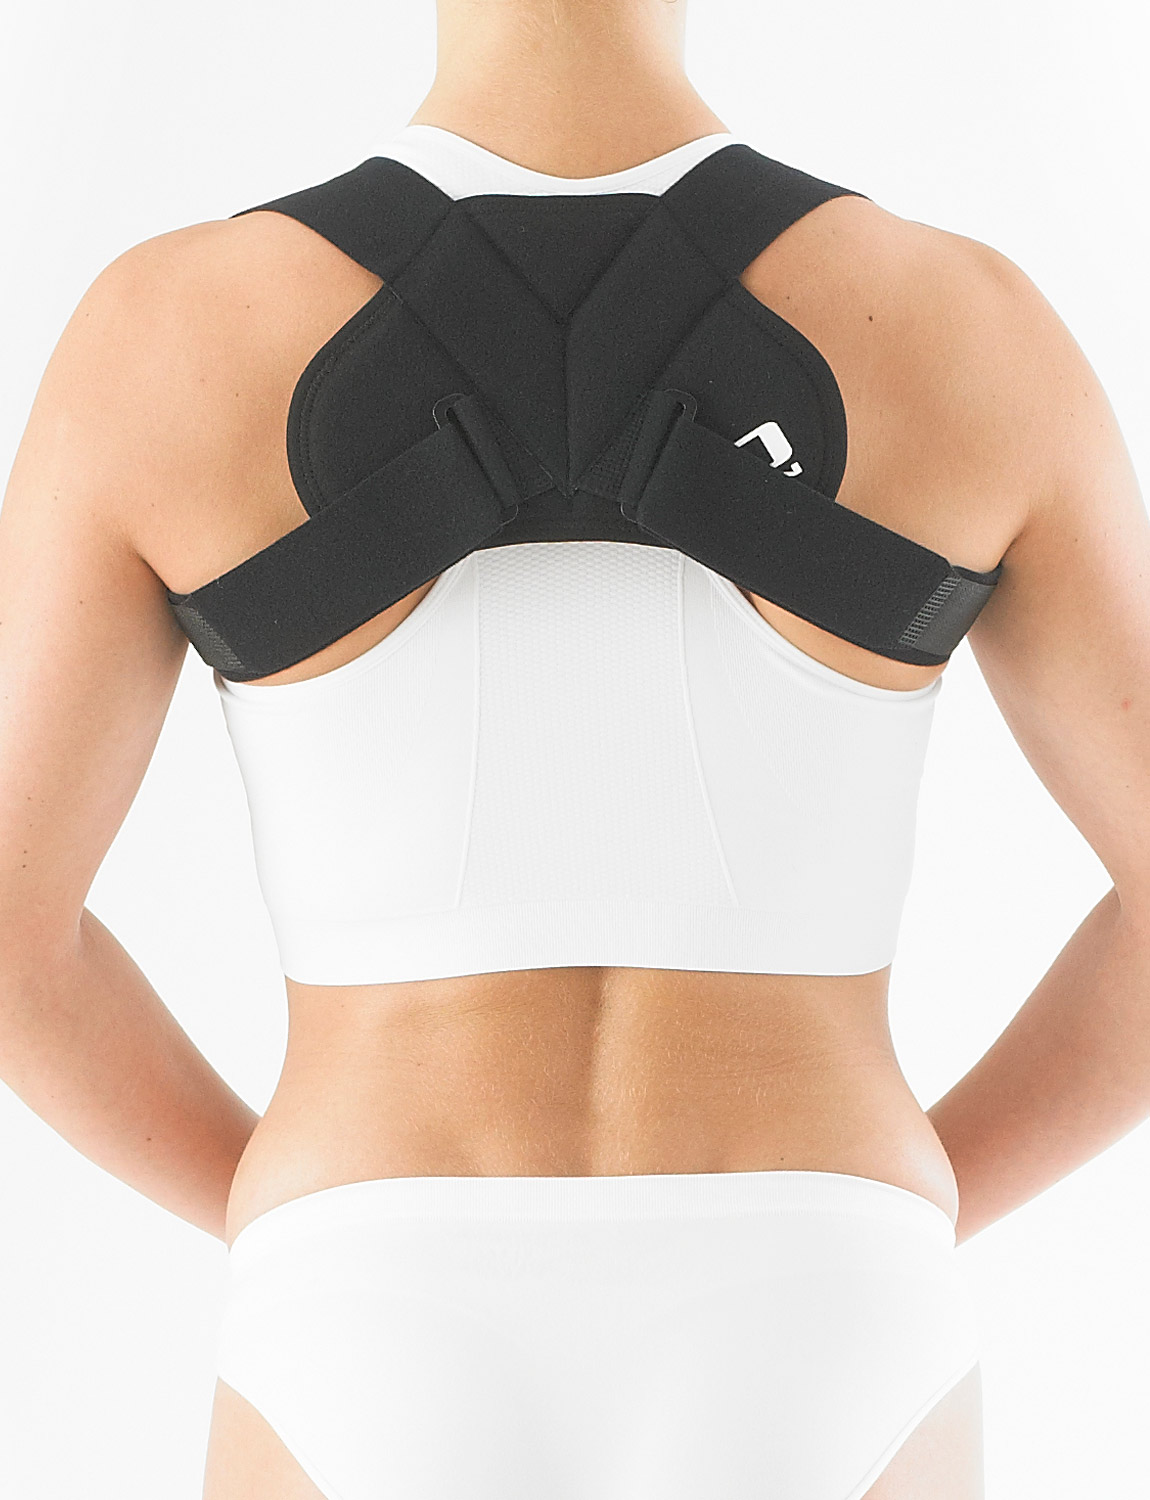 998 - LIGHT CLAVICLE/POSTURE SUPPORT  Designed to assist with the correction of poor posture and rounded/slumped shoulders. Providing stabilization to the clavicle area, the device is placed around the shoulders and secured with the fasteners for a comfortable and supportive fit. It helps correct postural alignment of the dorsal spine by encouraging the shoulders to pull back.